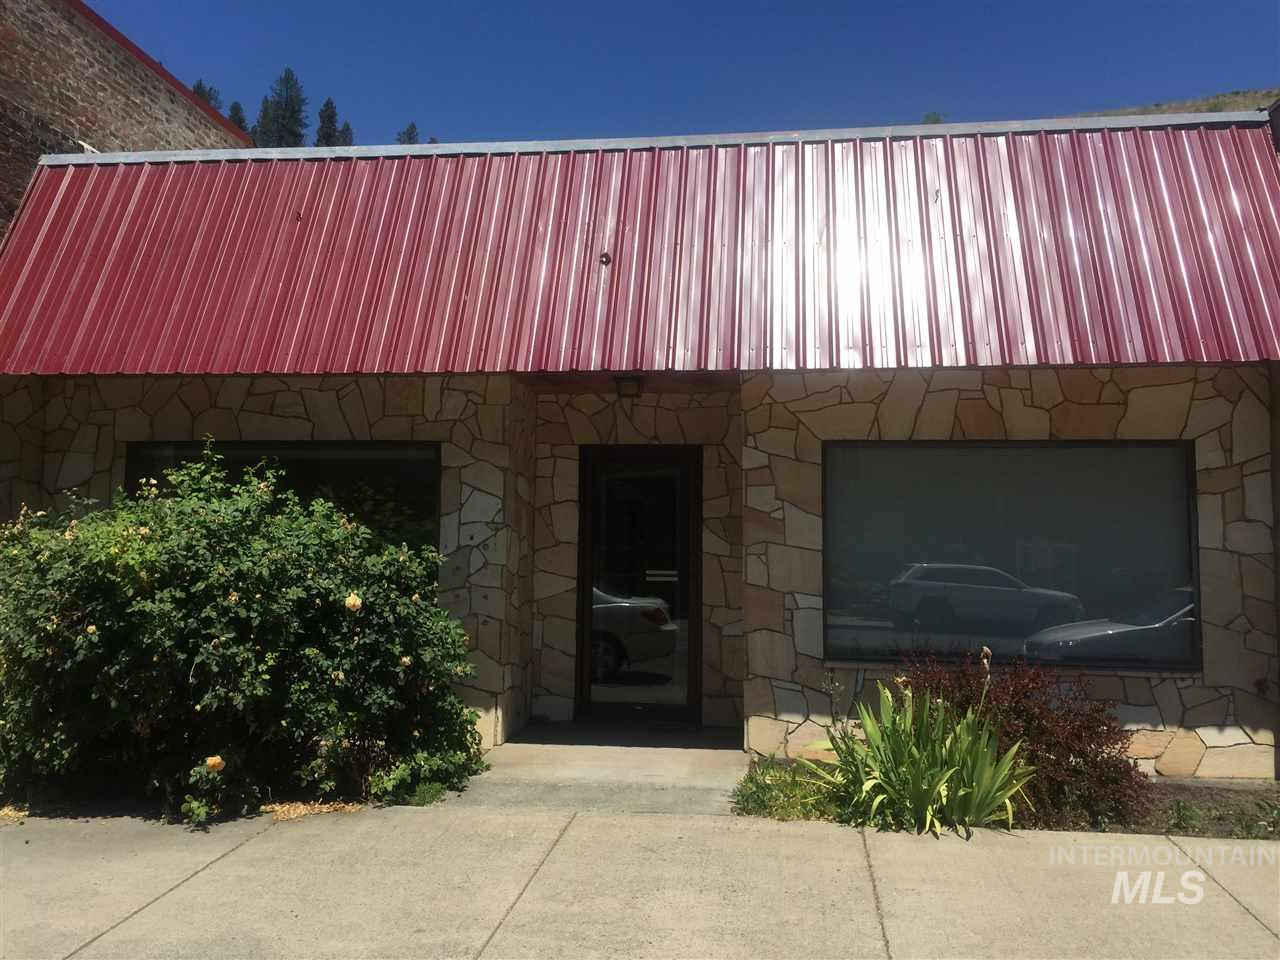 Commercial for Sale at 610 Main St. 610 Main St. Kendrick, Idaho 83843